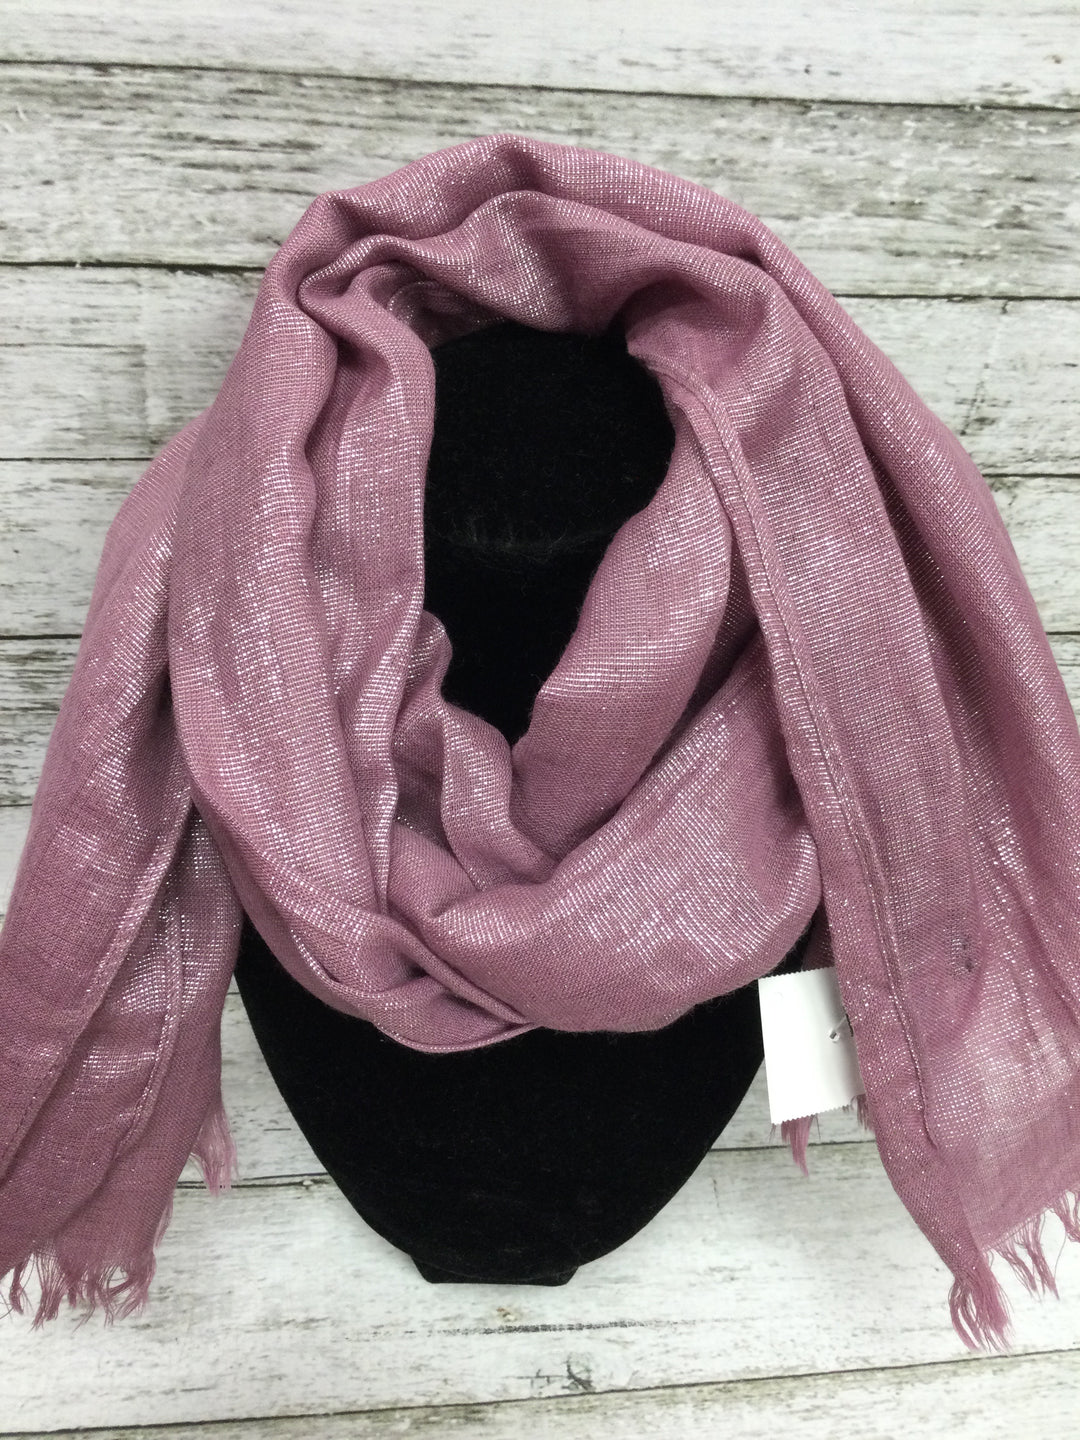 Primary Photo - brand: j crew , style: scarf , color: rose , sku: 127-4876-13641